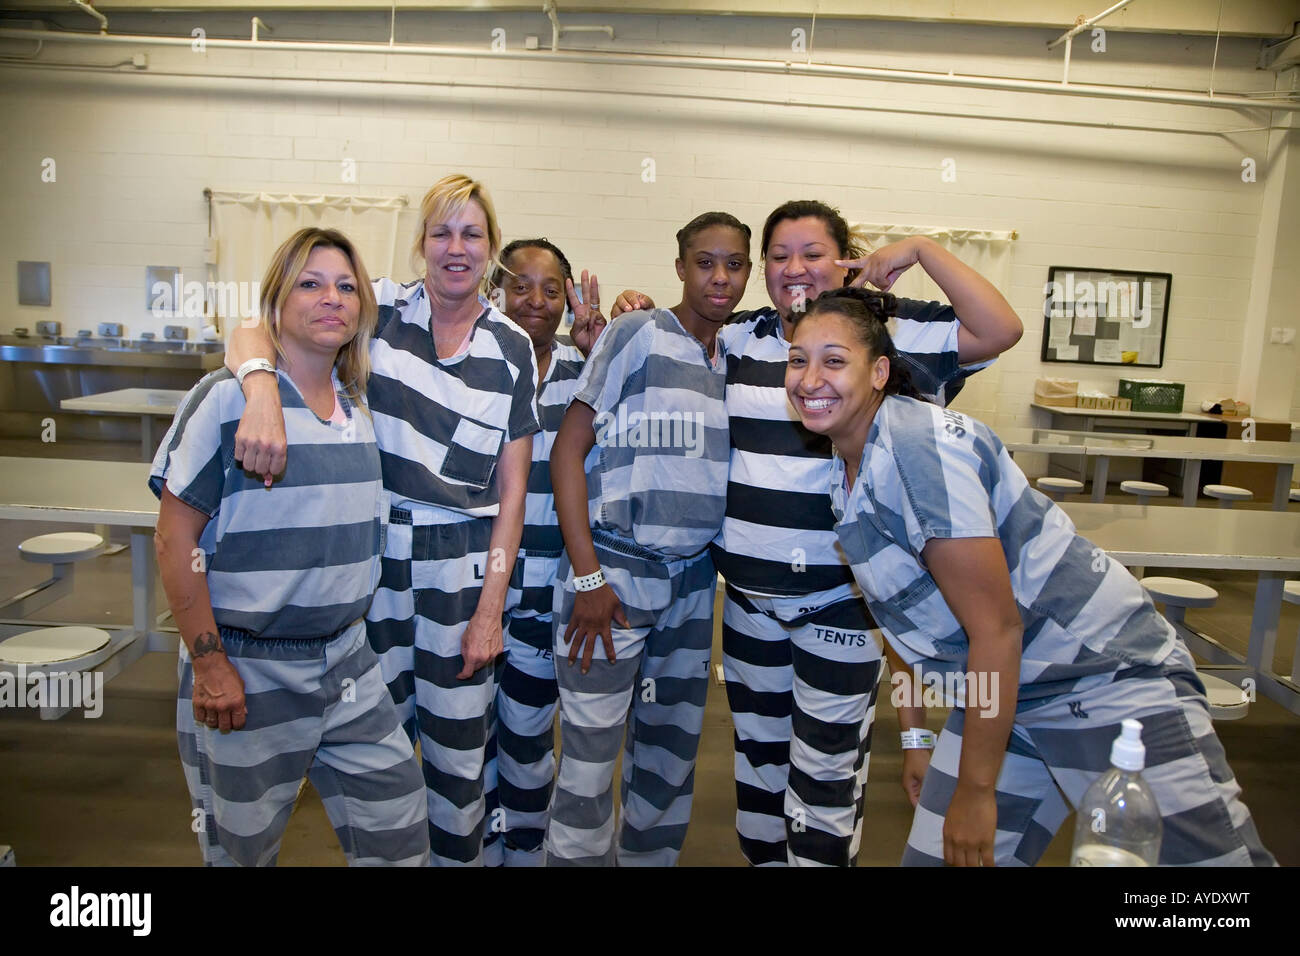 Inmate Stock Photos & Inmate Stock Images - Alamy